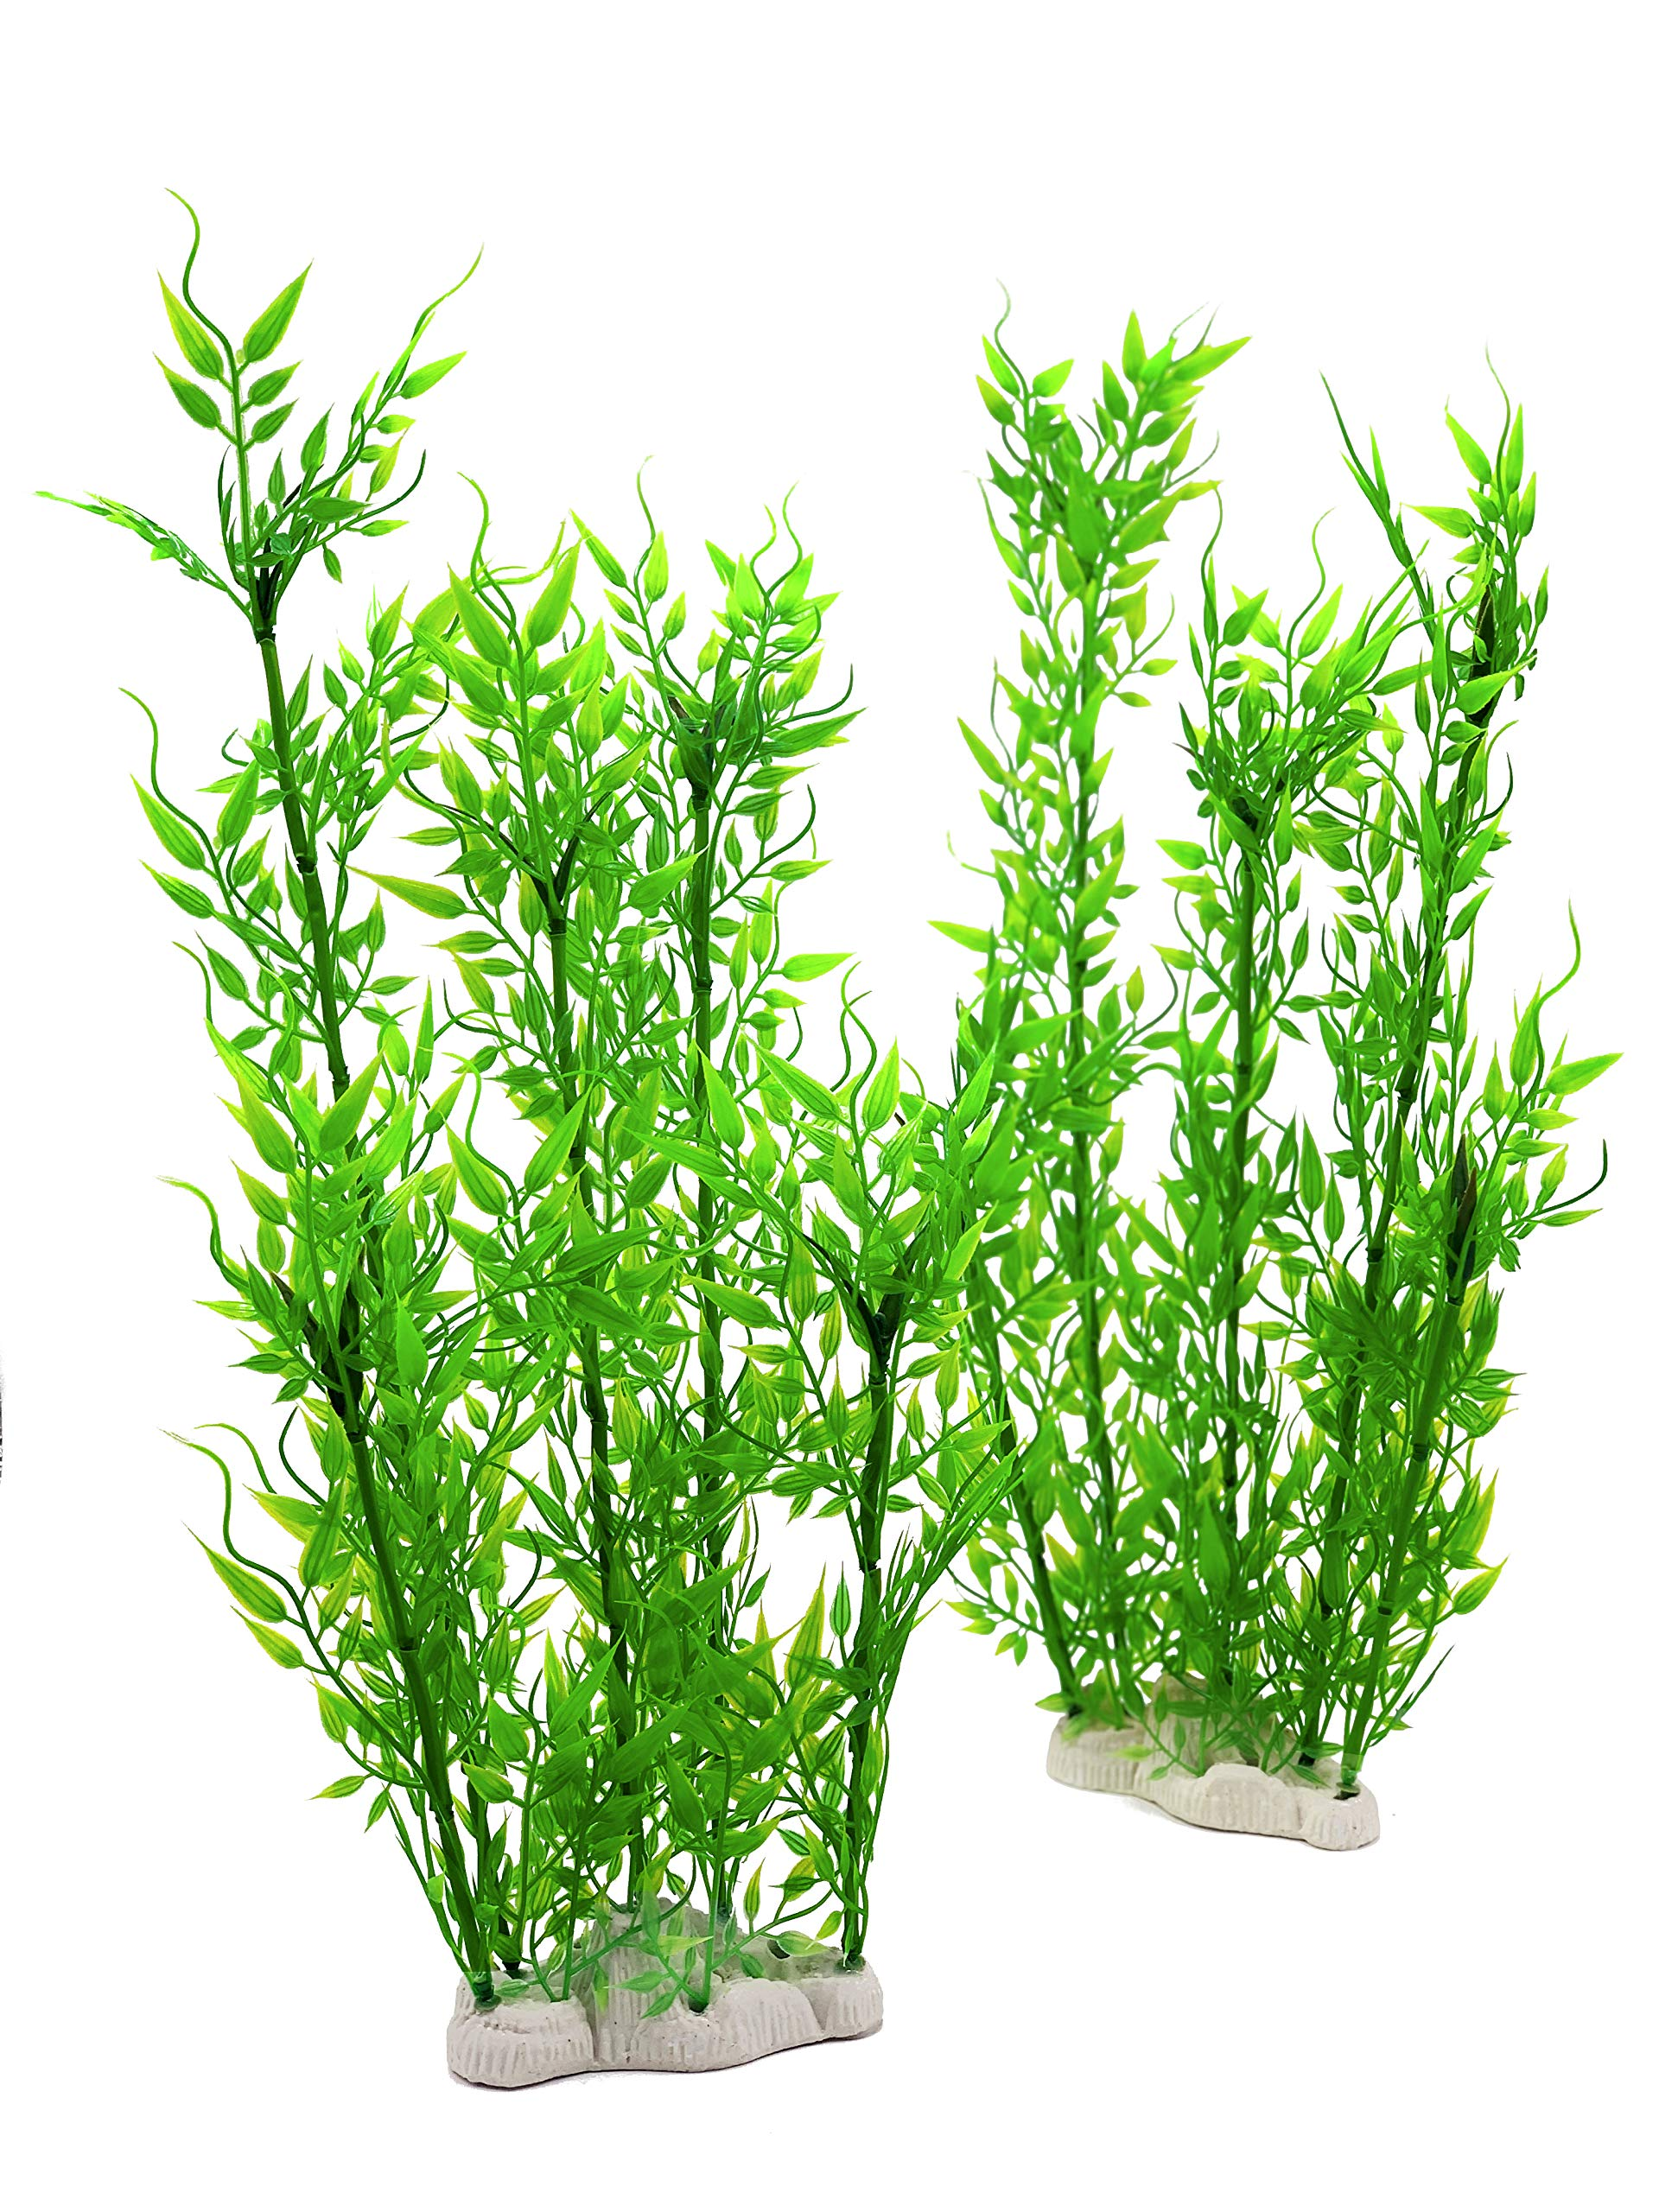 BEGONDIS Aquarium Decorations Fish Tank Artificial Green Water Plants Made of Soft Plastic,Safe for All Fish & Pets by BEGONDIS